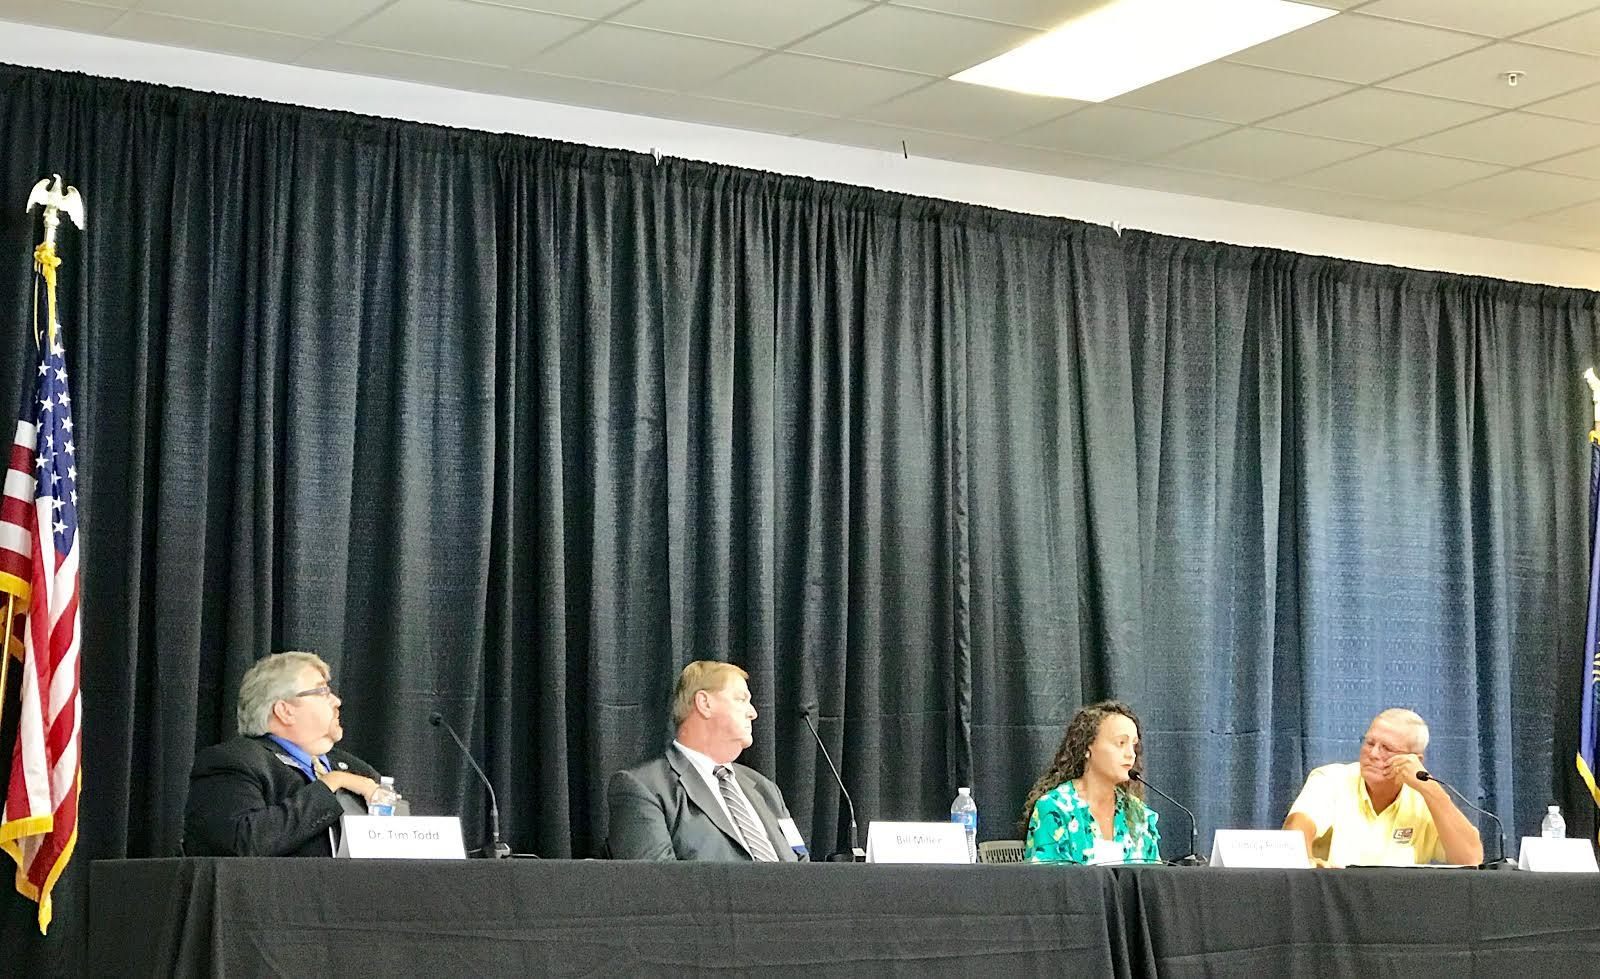 Obion County Joint Economic Development Council Ceo Lindsay Frilling Speaks During A Wave Panel With Left To Right Tim Todd Bill Miller And Larry Klien